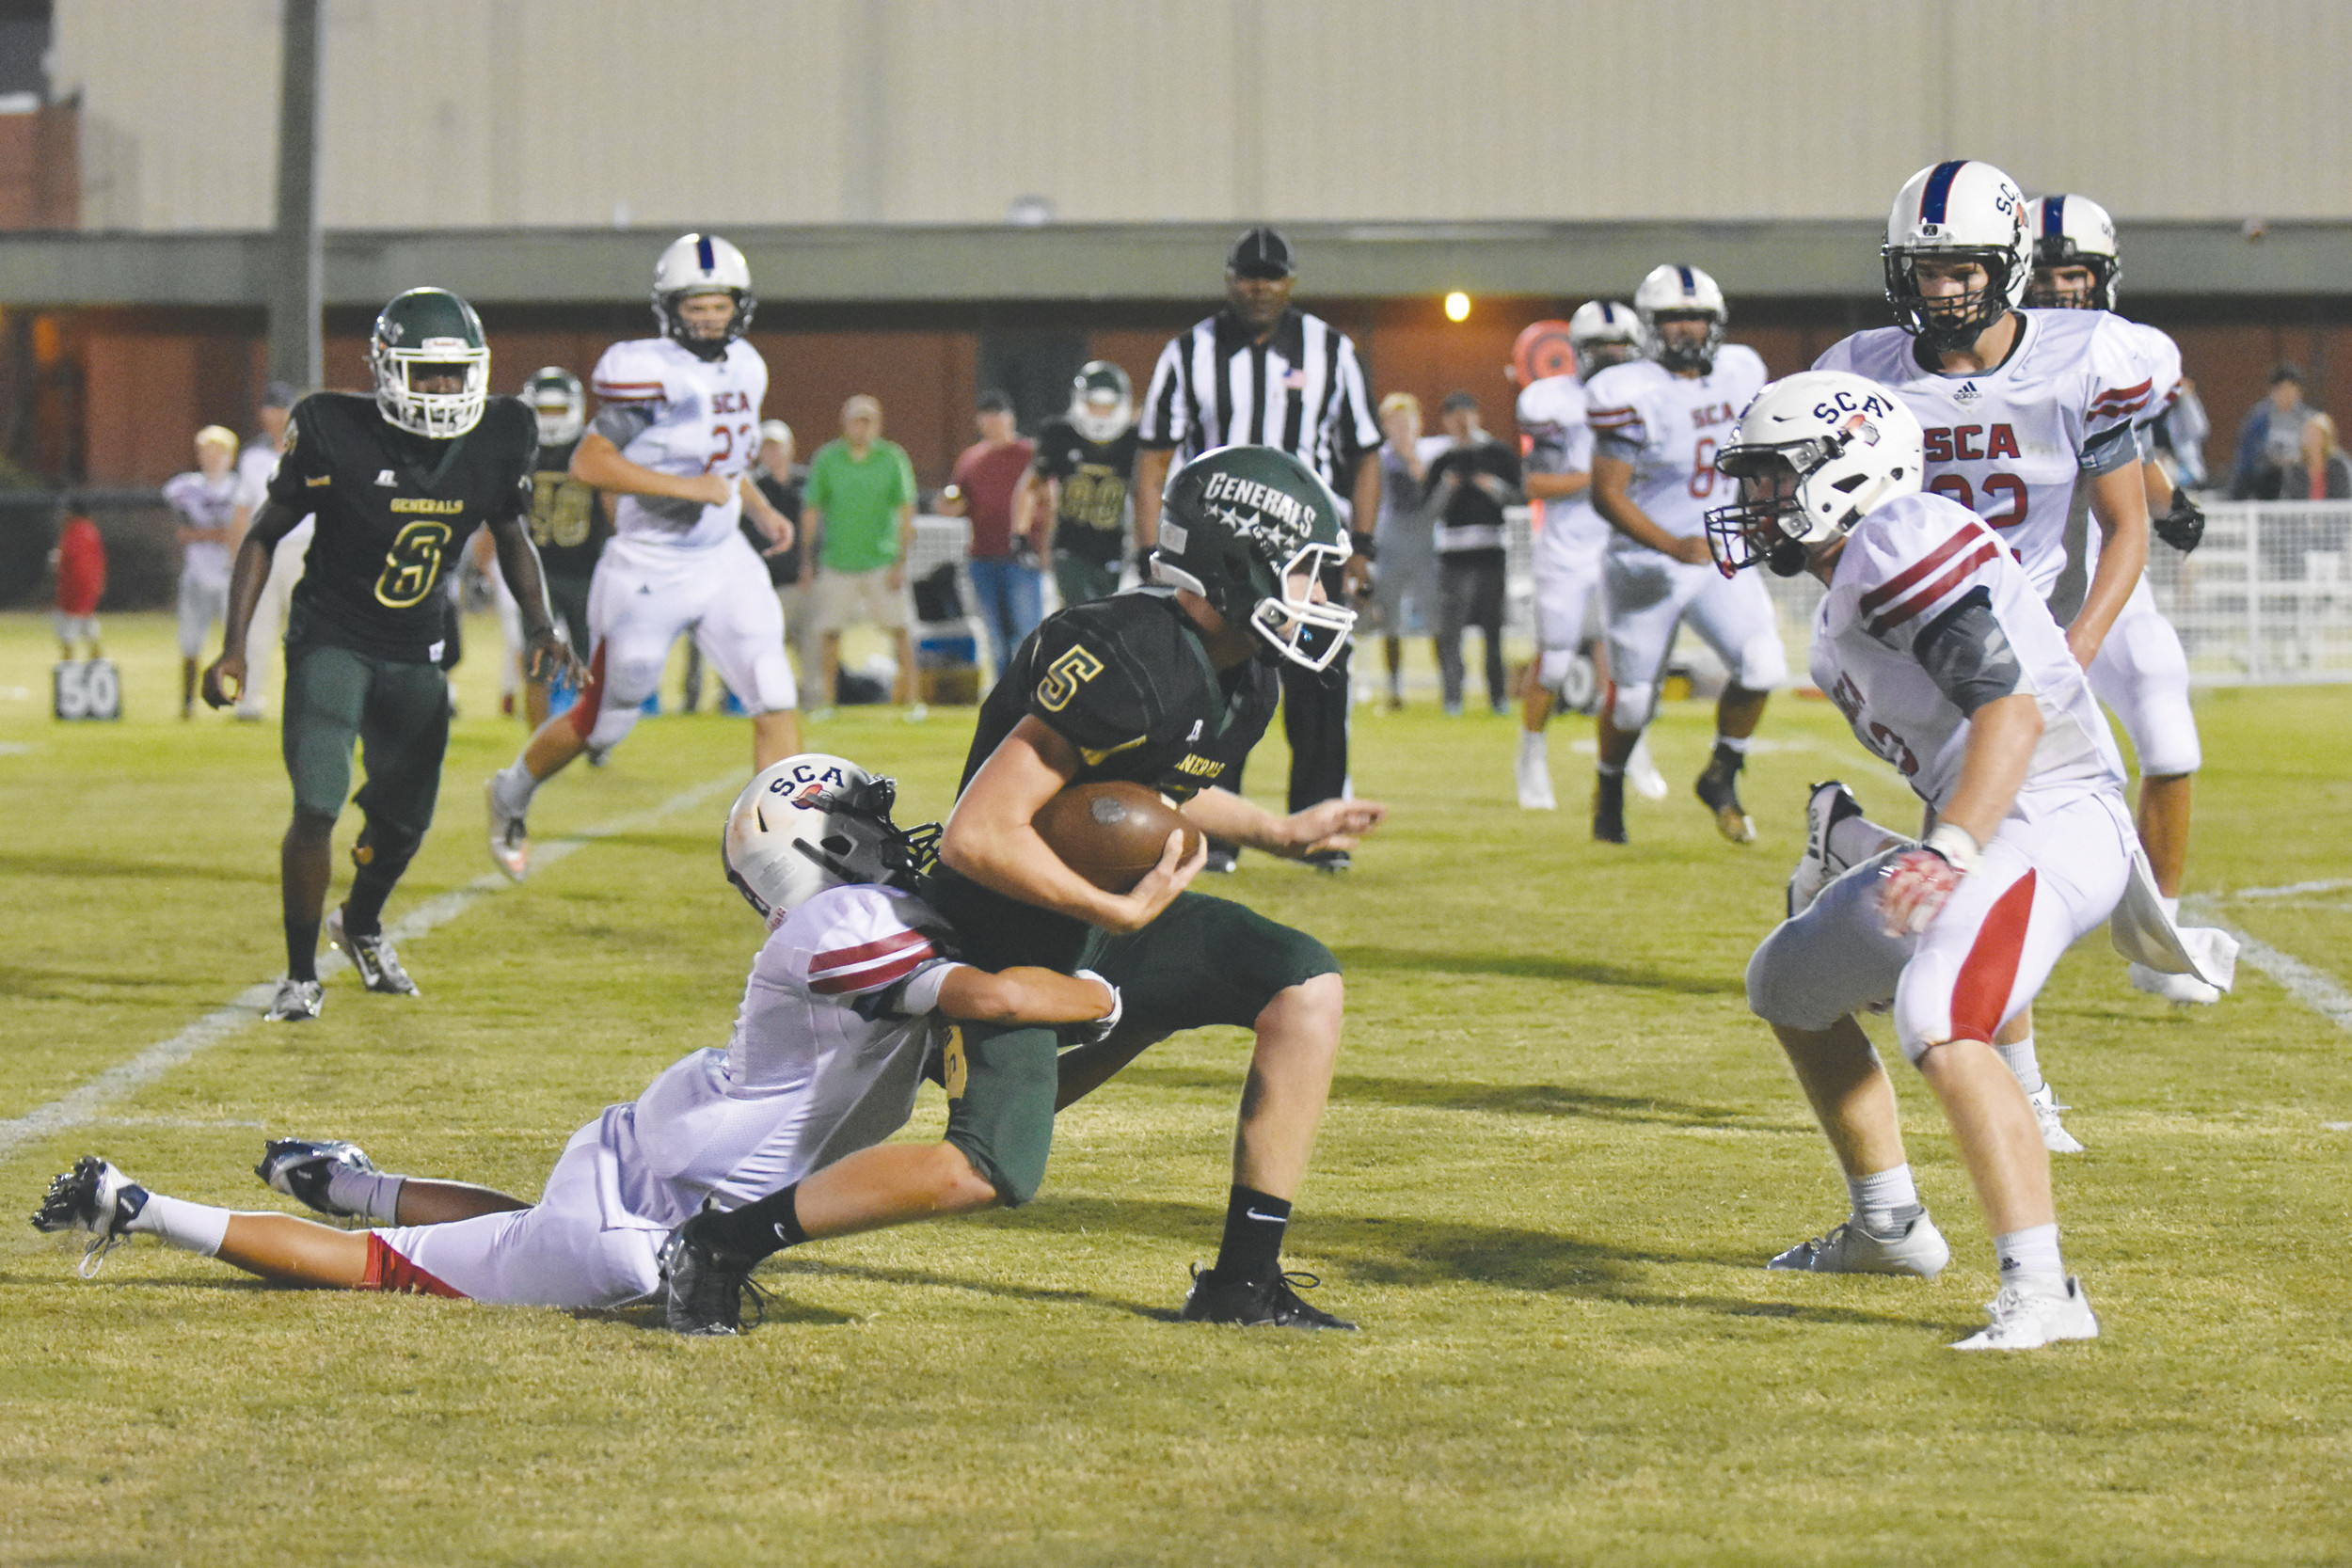 Thomas Sumter Academy's Mason Warren (5) is wrapped up during the Generals' 50-34 loss to Spartanburg Christian on Friday at General Field in Dalzell.